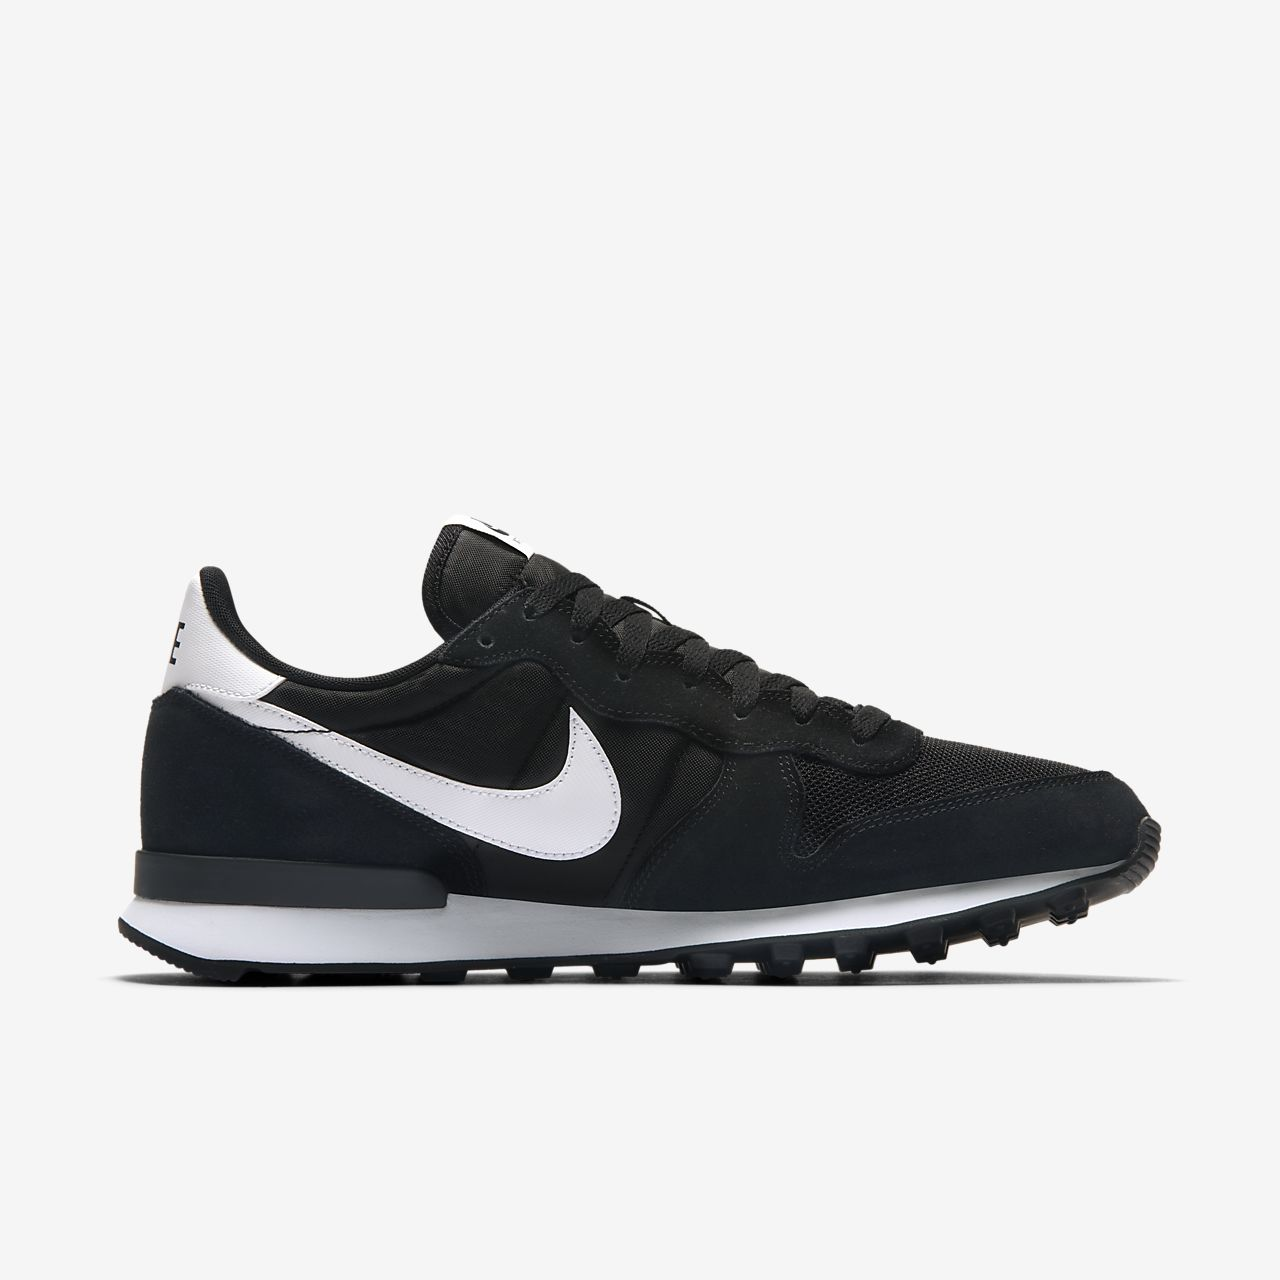 new arrival 05676 d070e scarpa nike internationalist nero neutral grey bianco summit white  631754-011